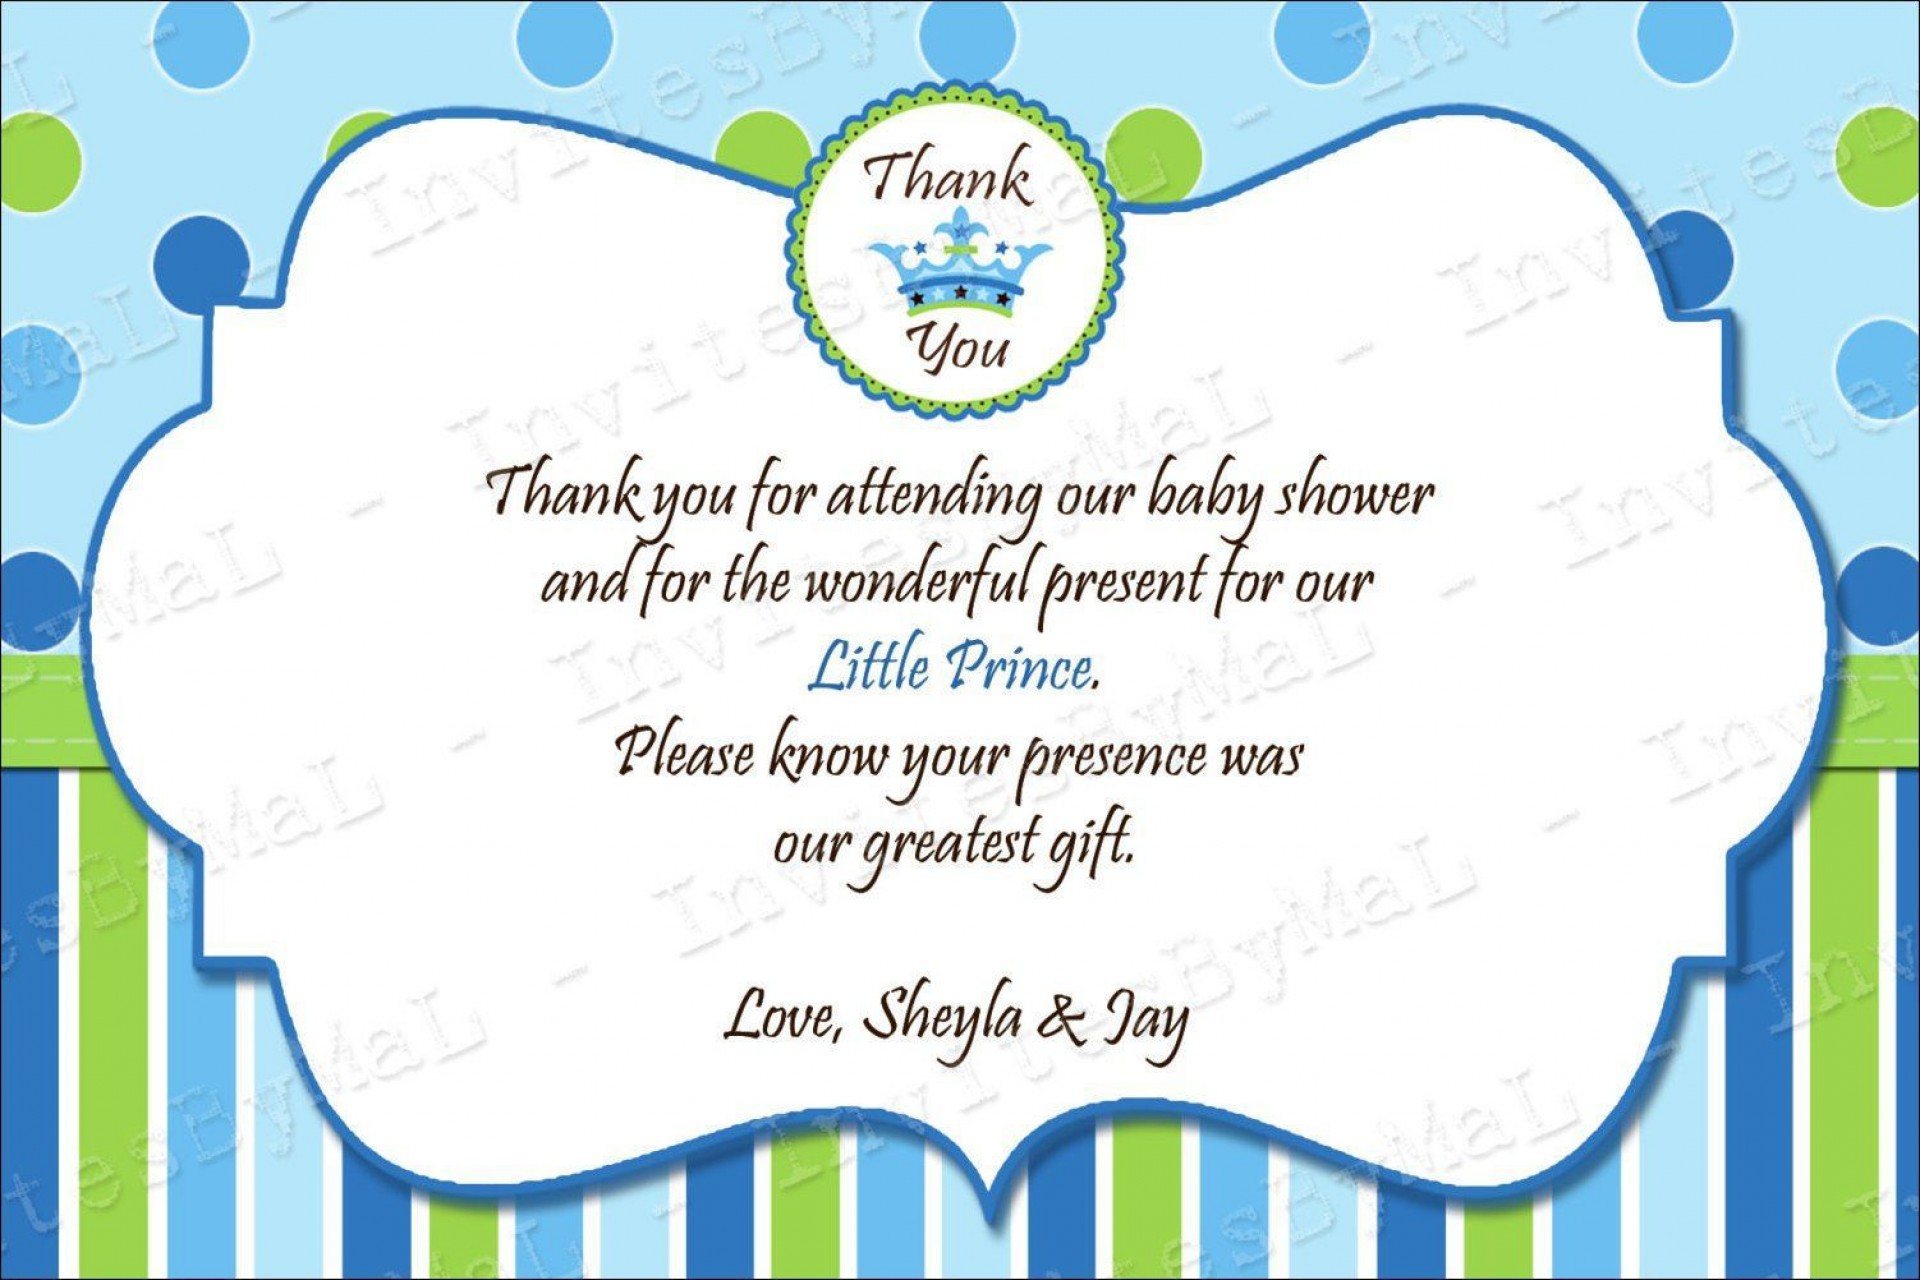 008 Shocking Thank You Note Template Baby Shower Concept  Card Free Sample For Letter Gift1920